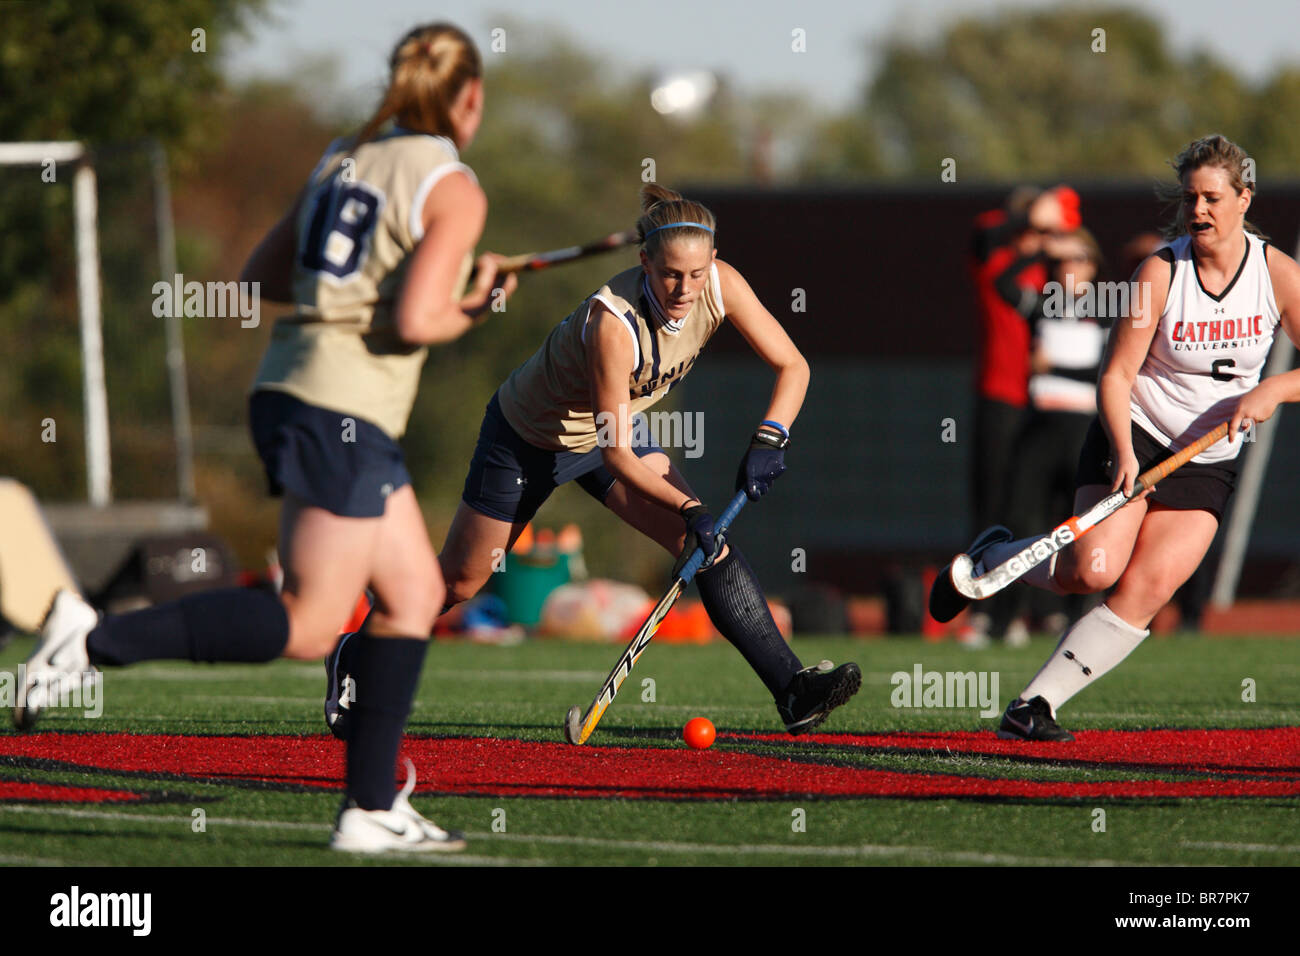 A Juniata College player passes the ball against Catholic University during the Landmark Conference field hockey - Stock Image